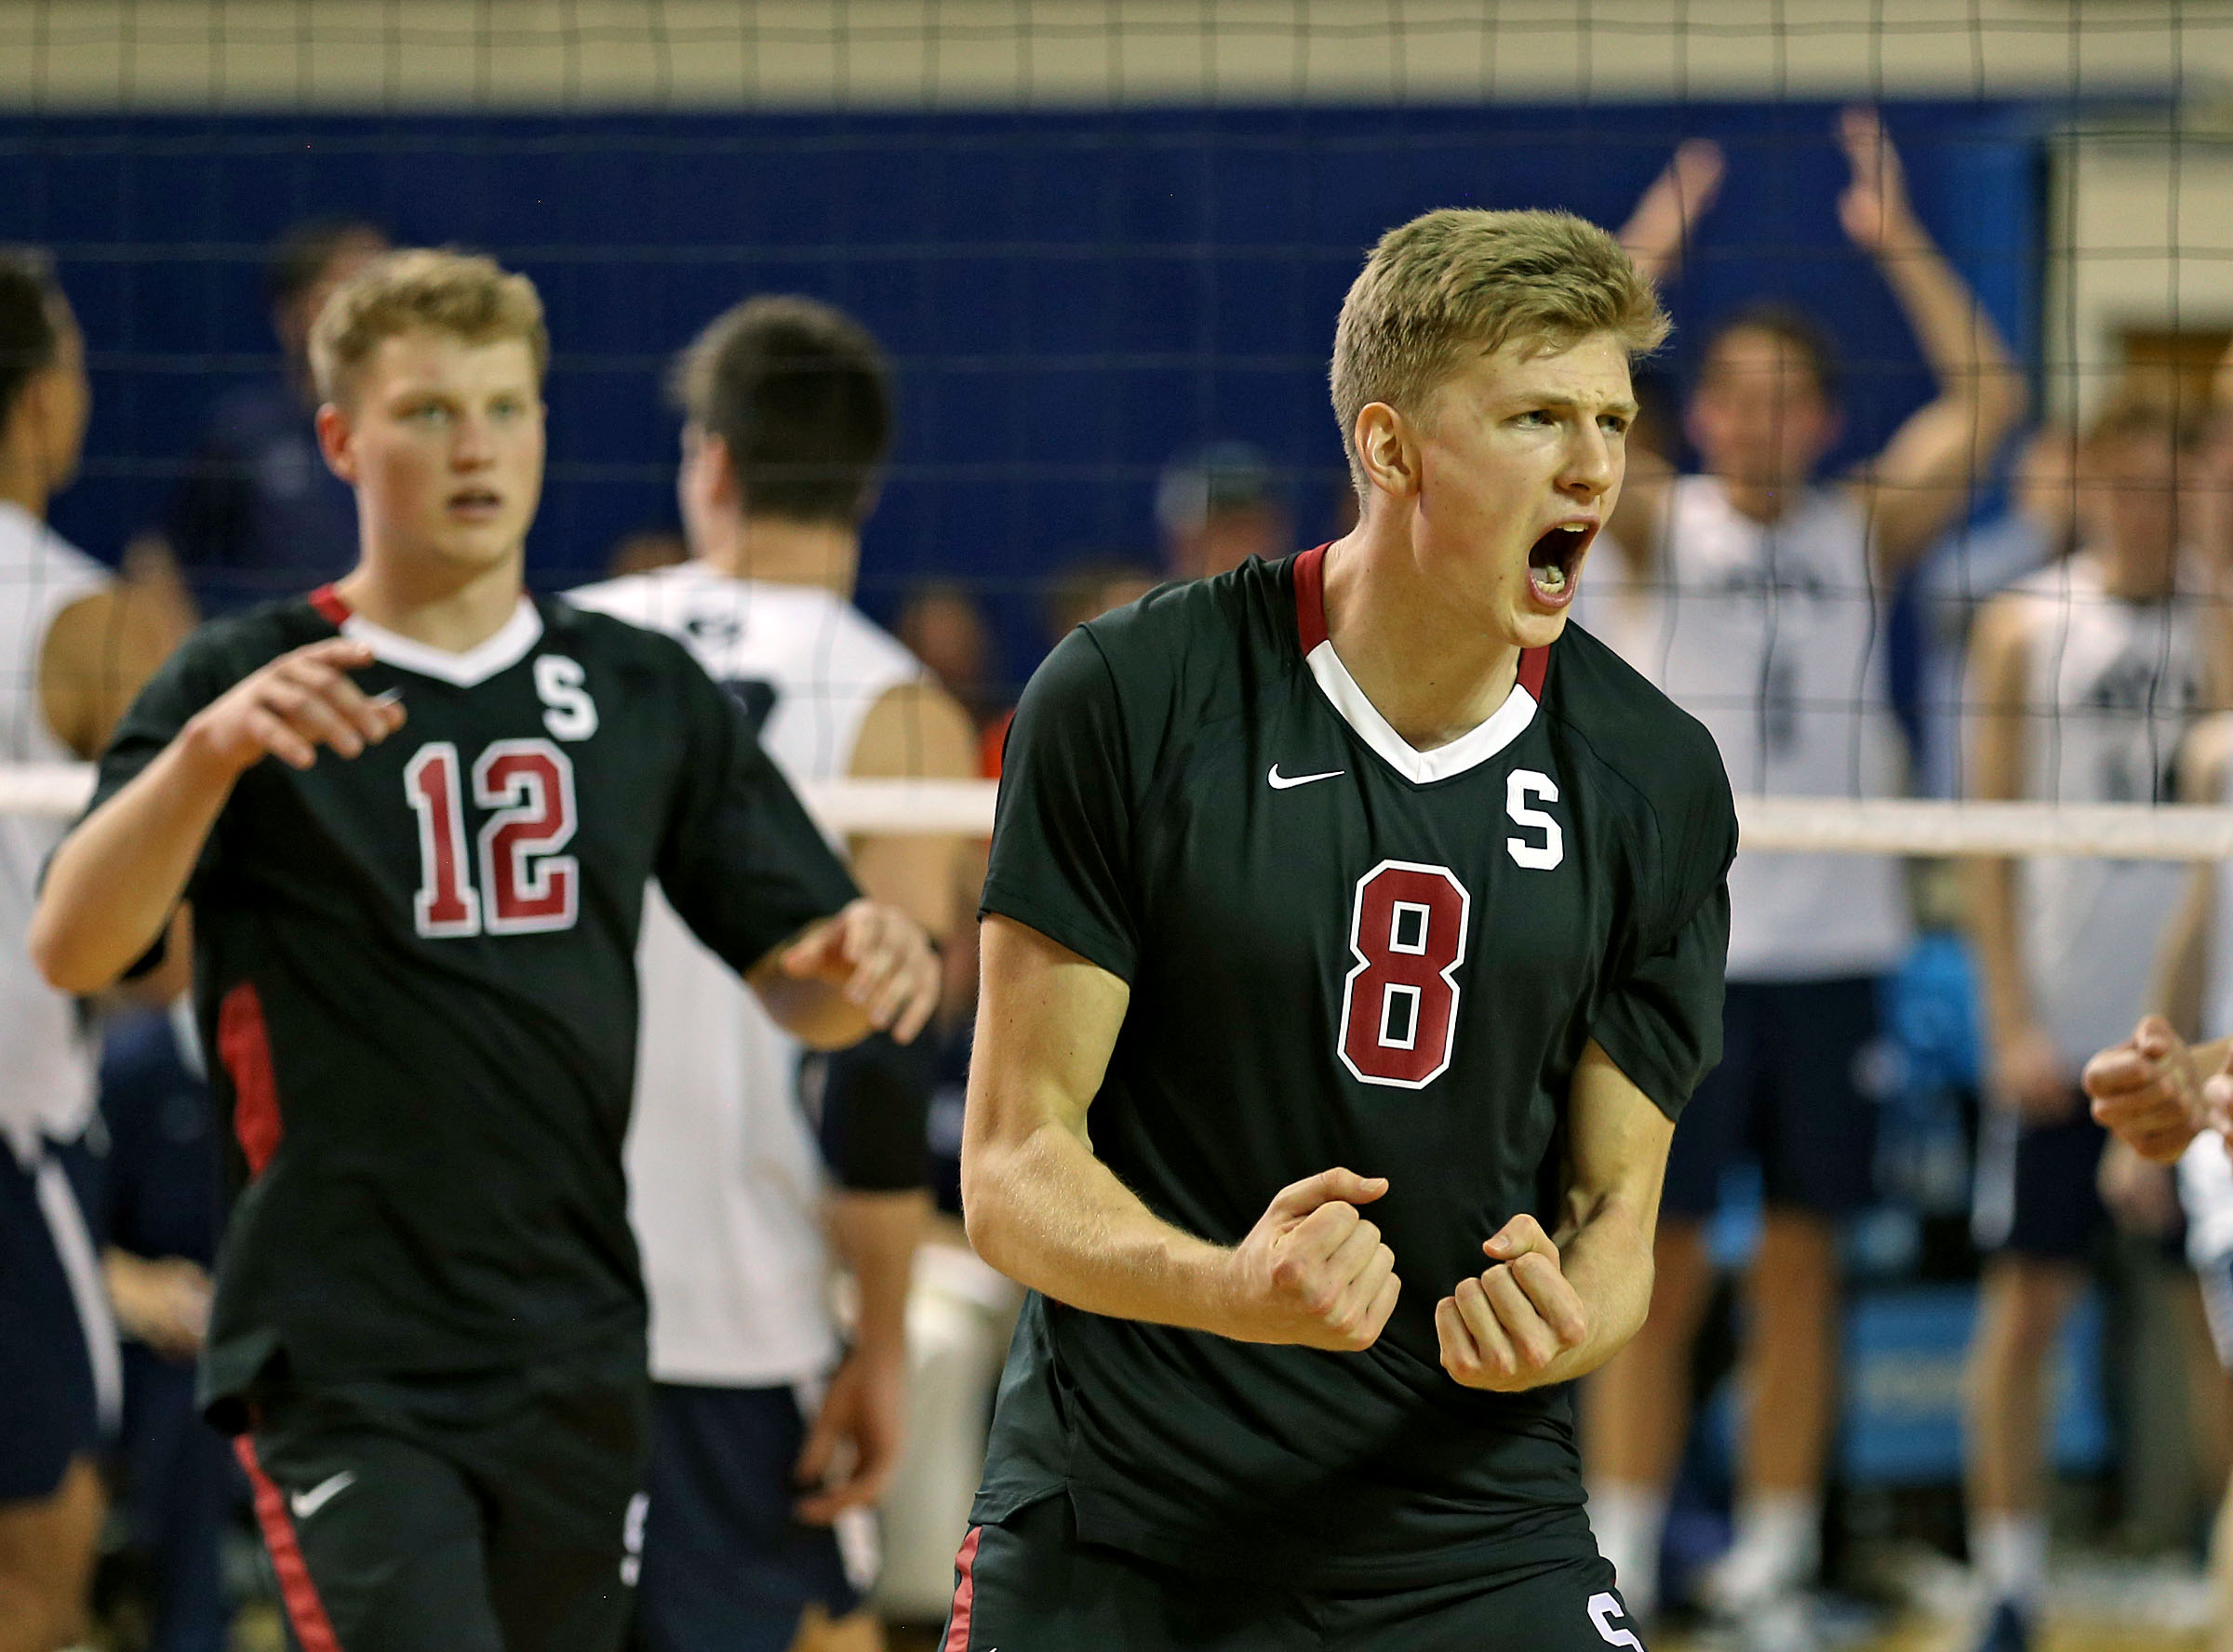 Stanford's James Shaw celebrates as the 11th ranked Stanford Cardinal defeats the top ranked BYU men's volleyball Cougars 3-2 games Friday, Jan. 15, 2016, in Provo.